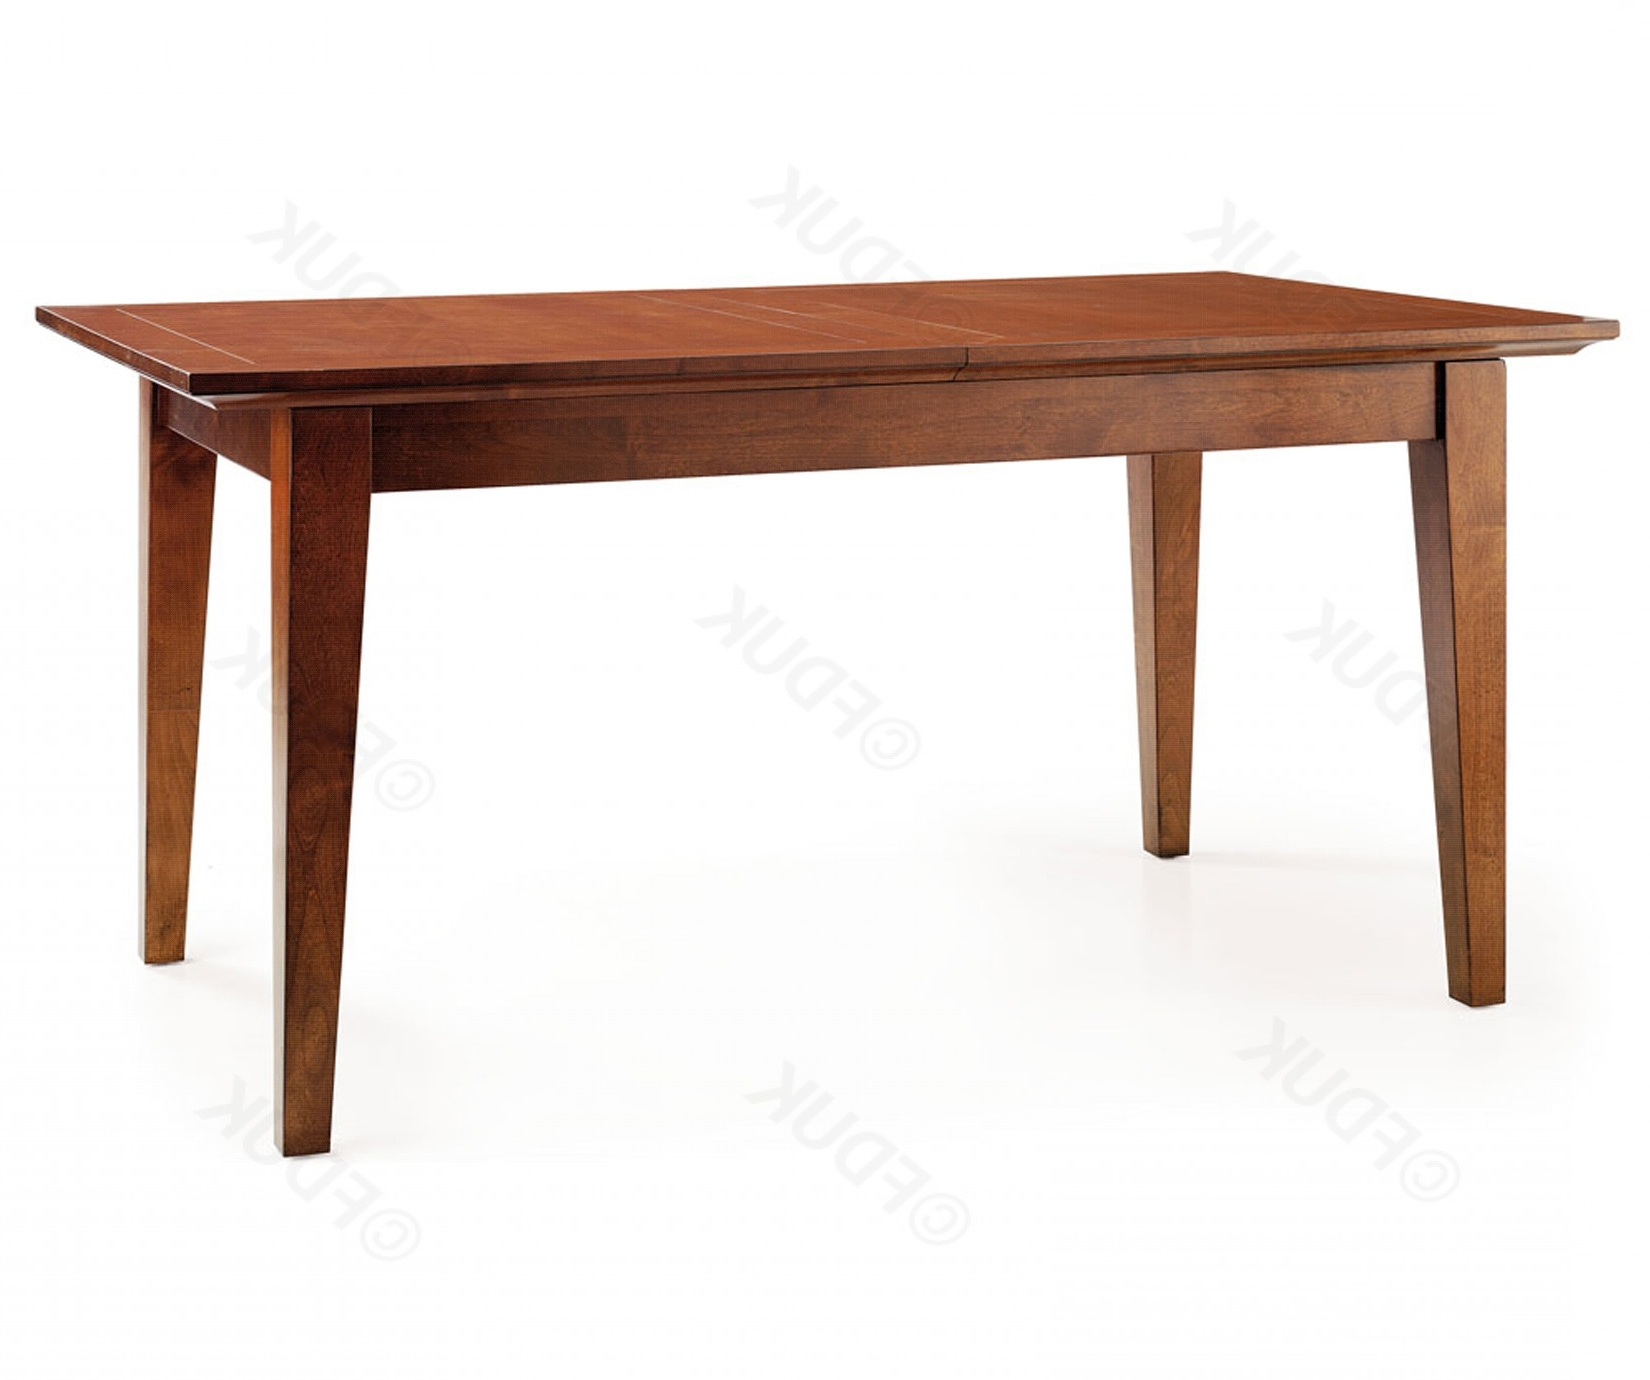 Dining Tables New York Pertaining To Preferred Willis & Gambier (View 7 of 25)